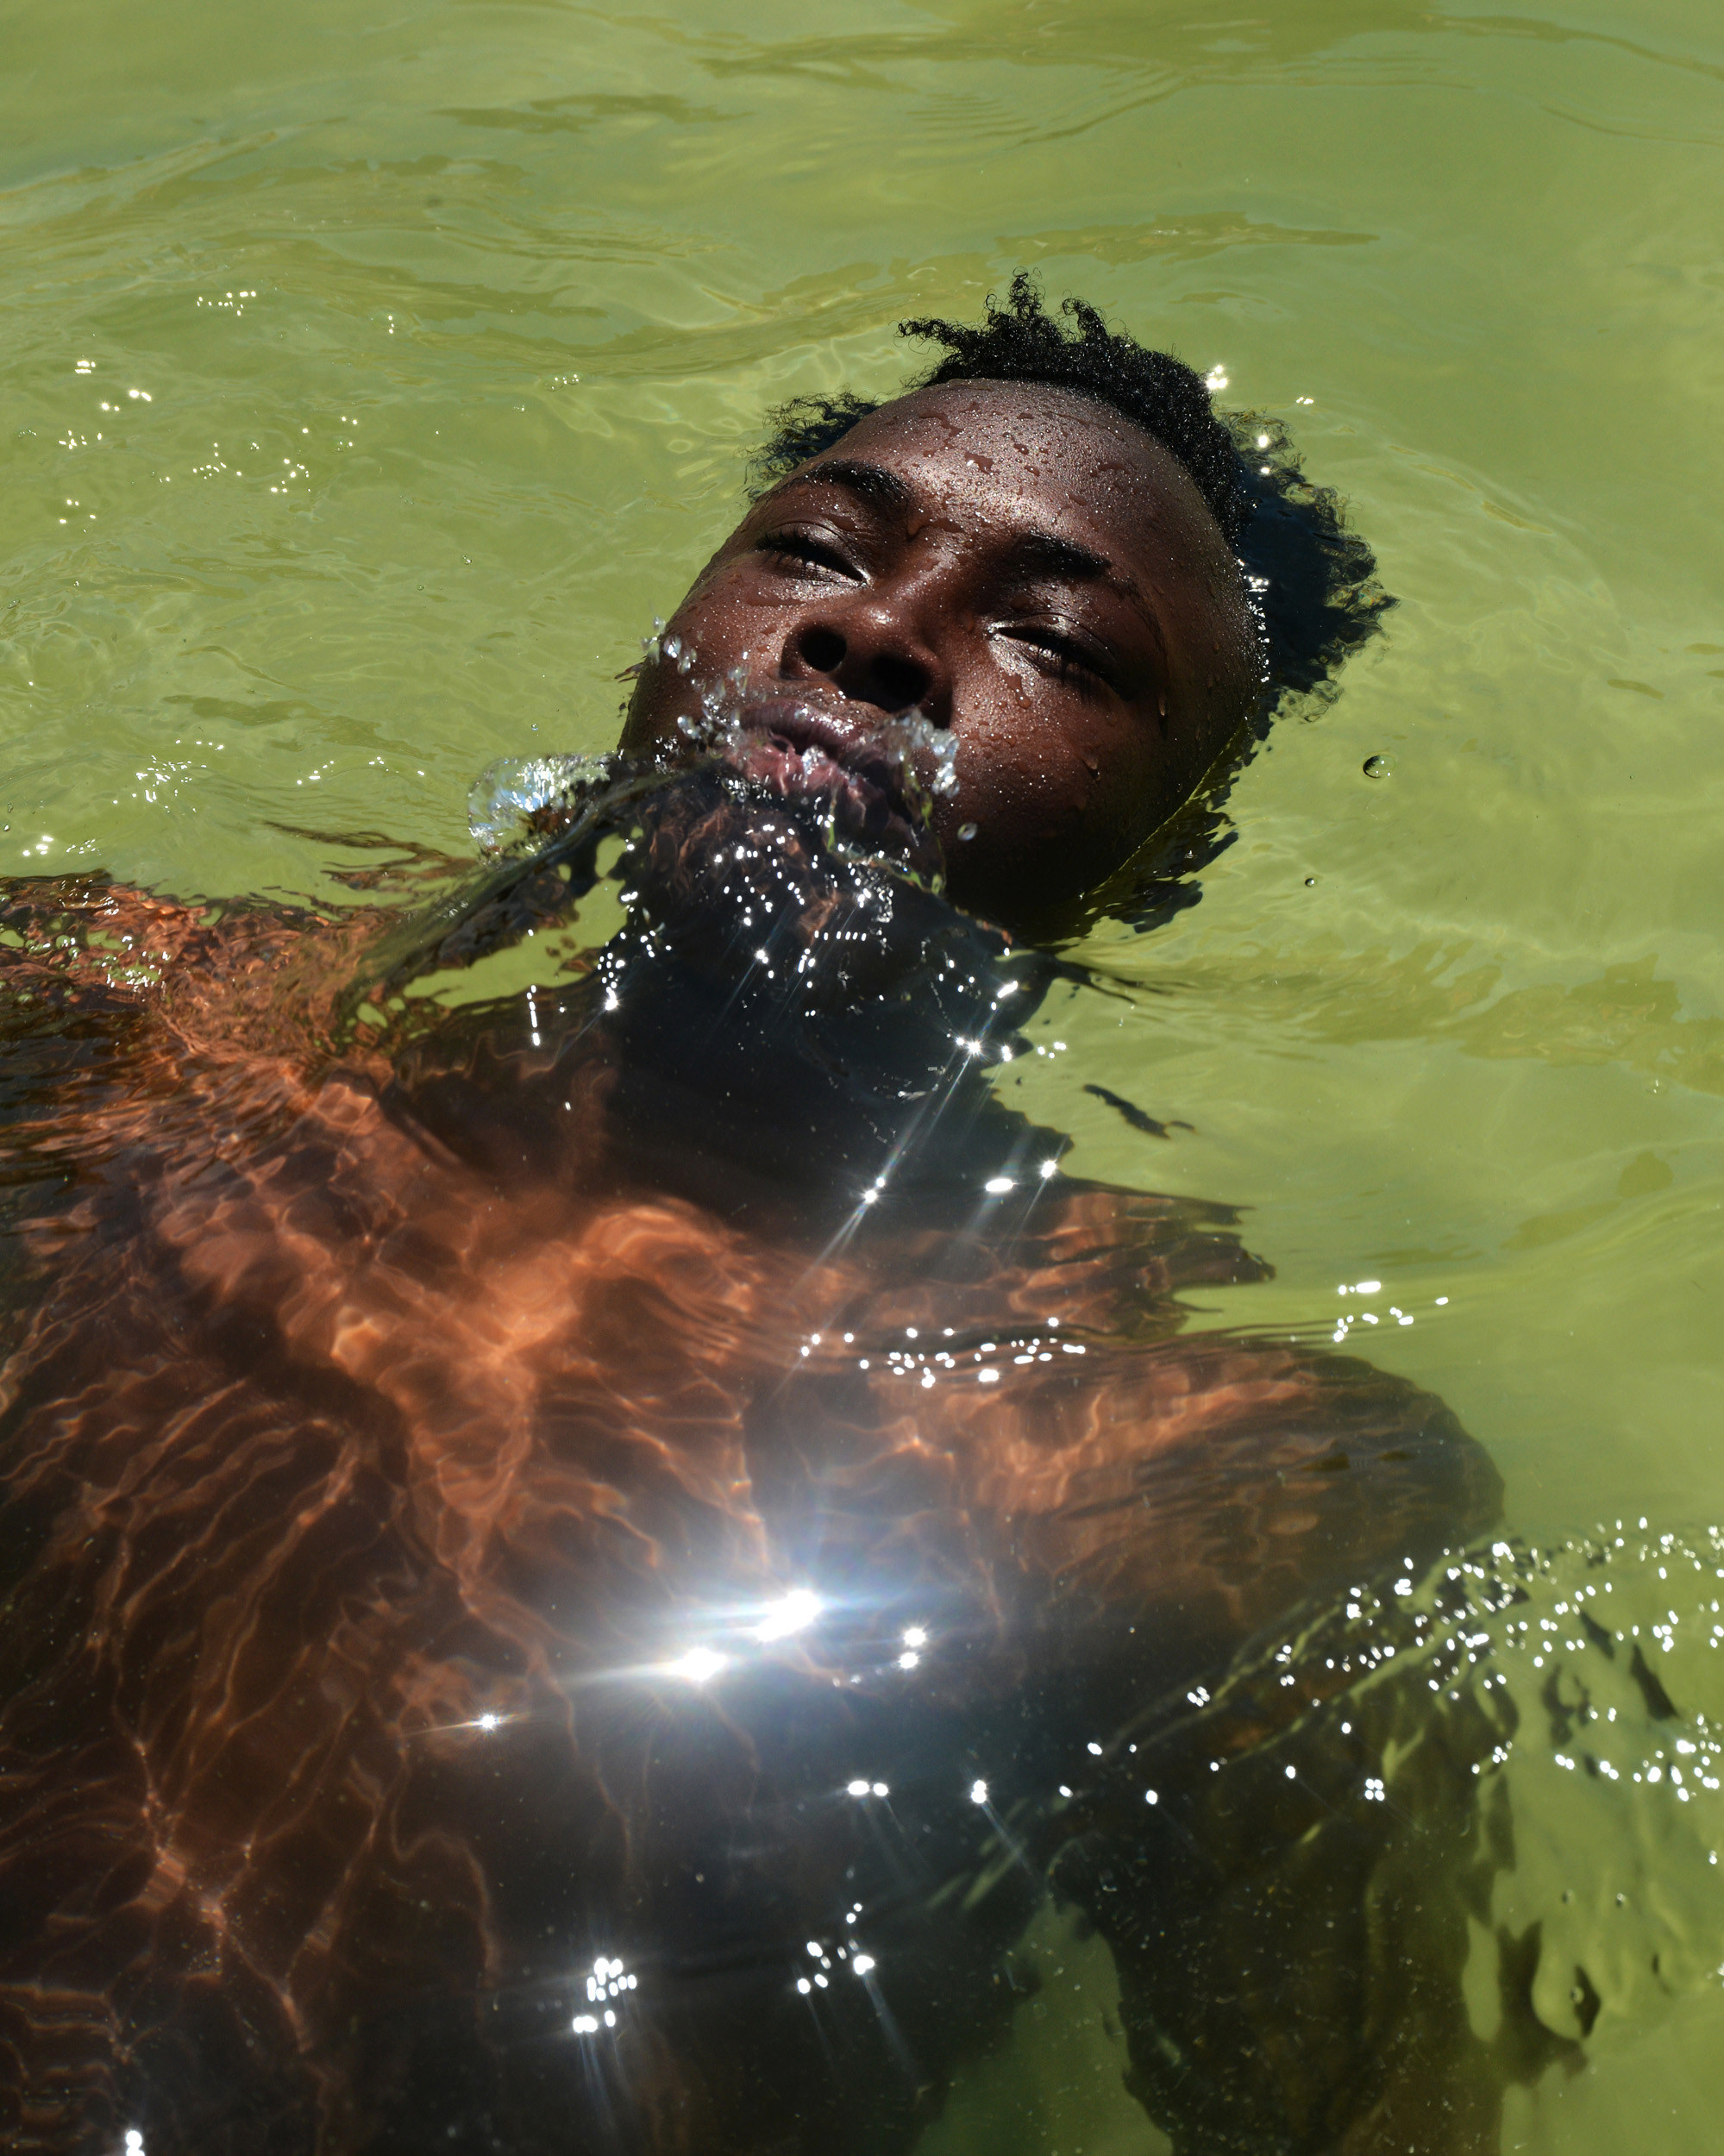 A man is floating in water with sunlight